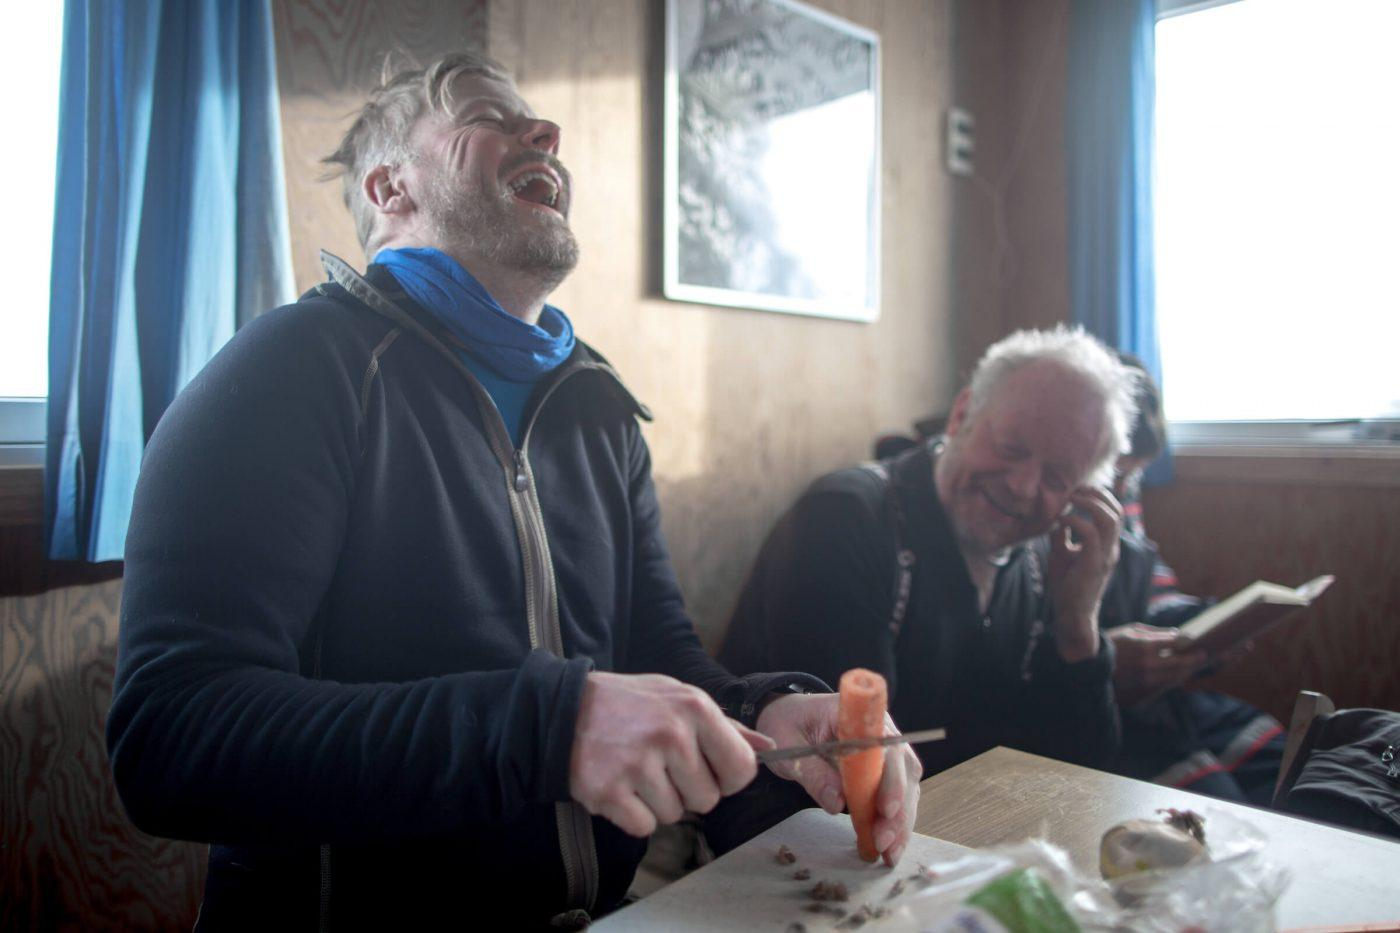 Cutting carrots is always fun on a ski touring trip in East Greenland. By Mads Pihl